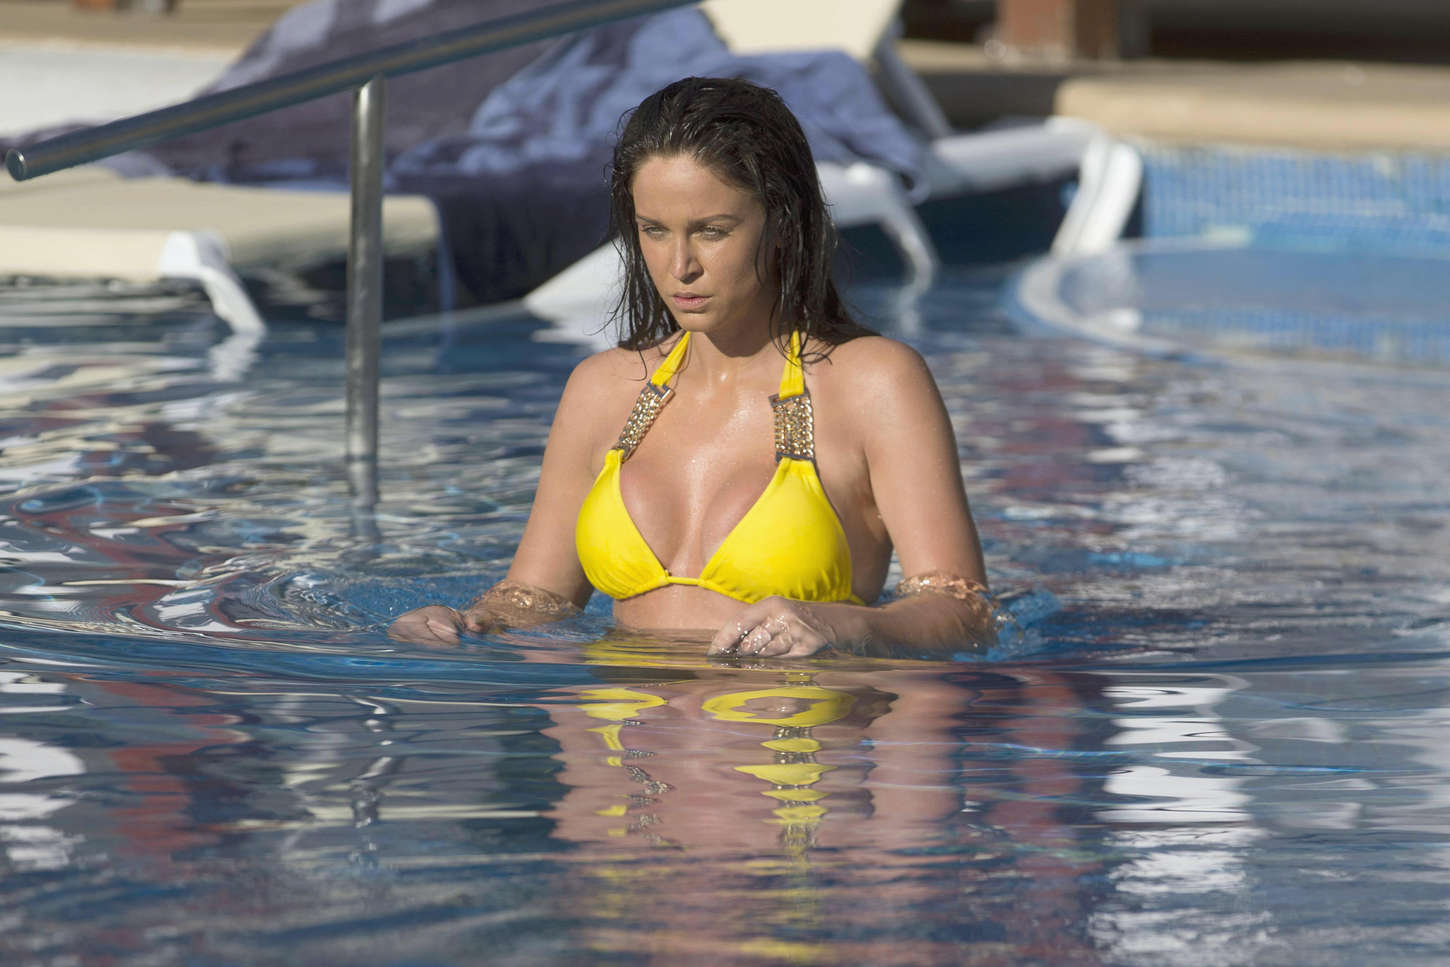 Vicky Pattison Wearing Bikini on holiday in Mexico